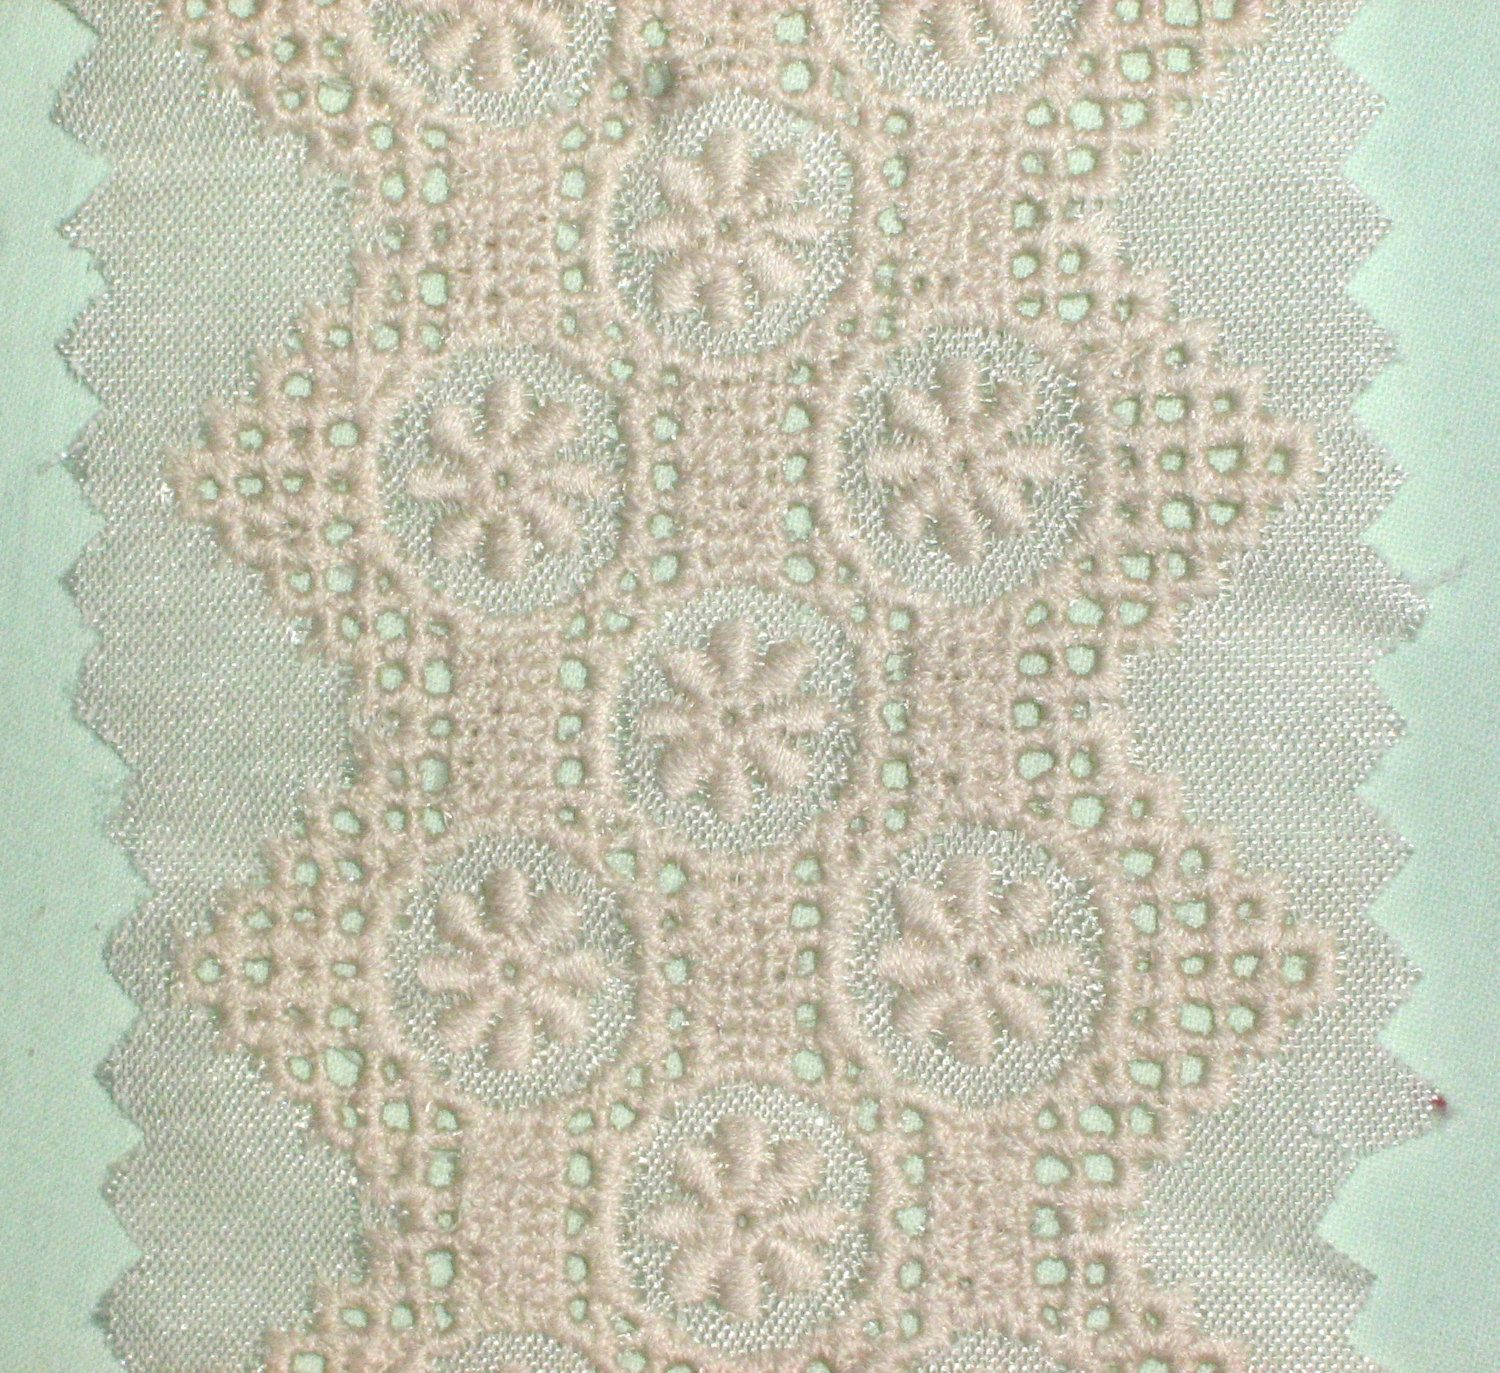 1e0aa978d 1 YARD - Vintage Cutwork Embroidery Lace Trim, Border or Insert, 2 ...